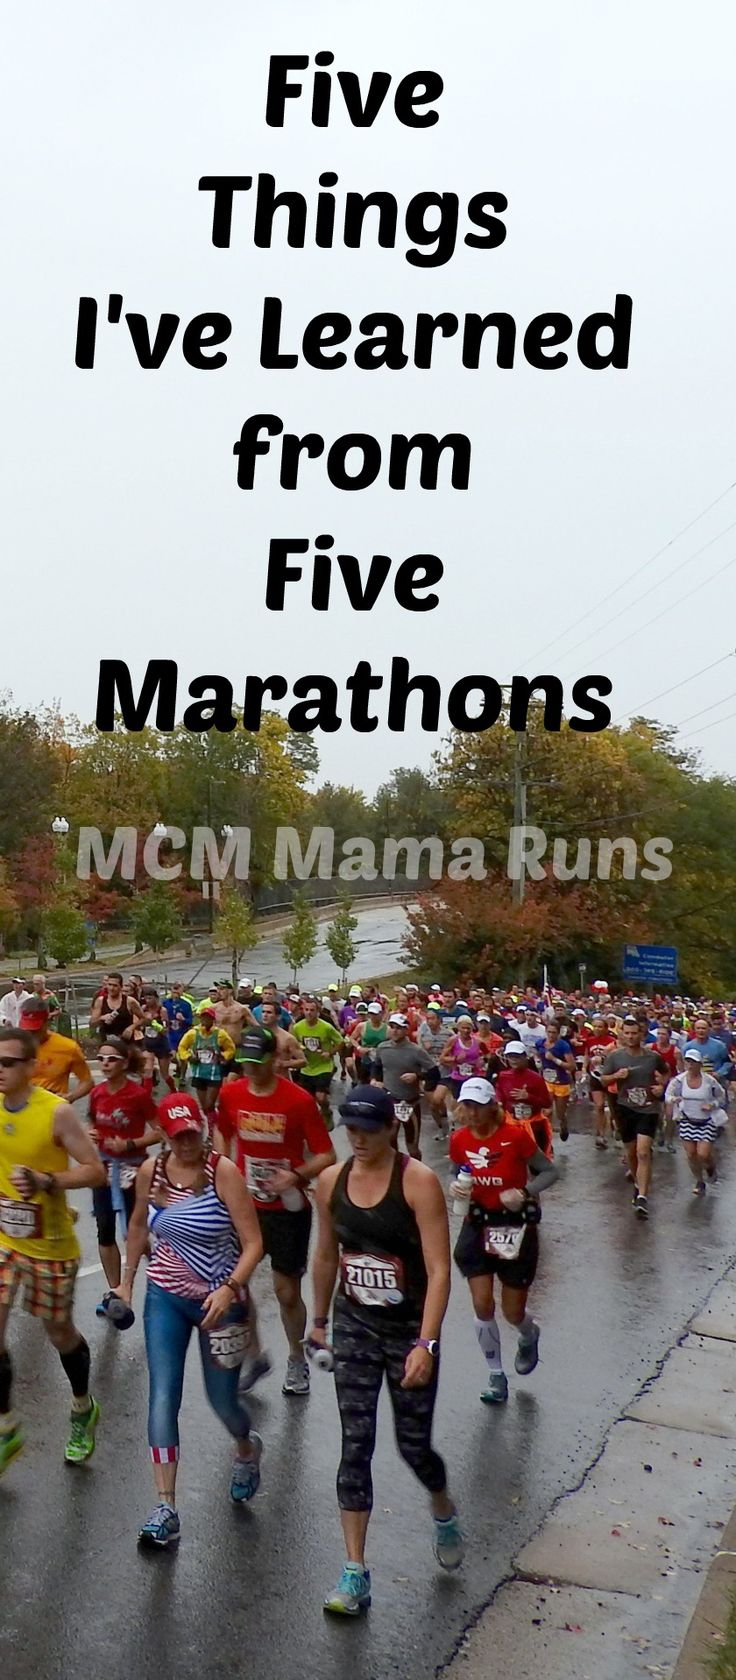 Five things I've learned from five marathons